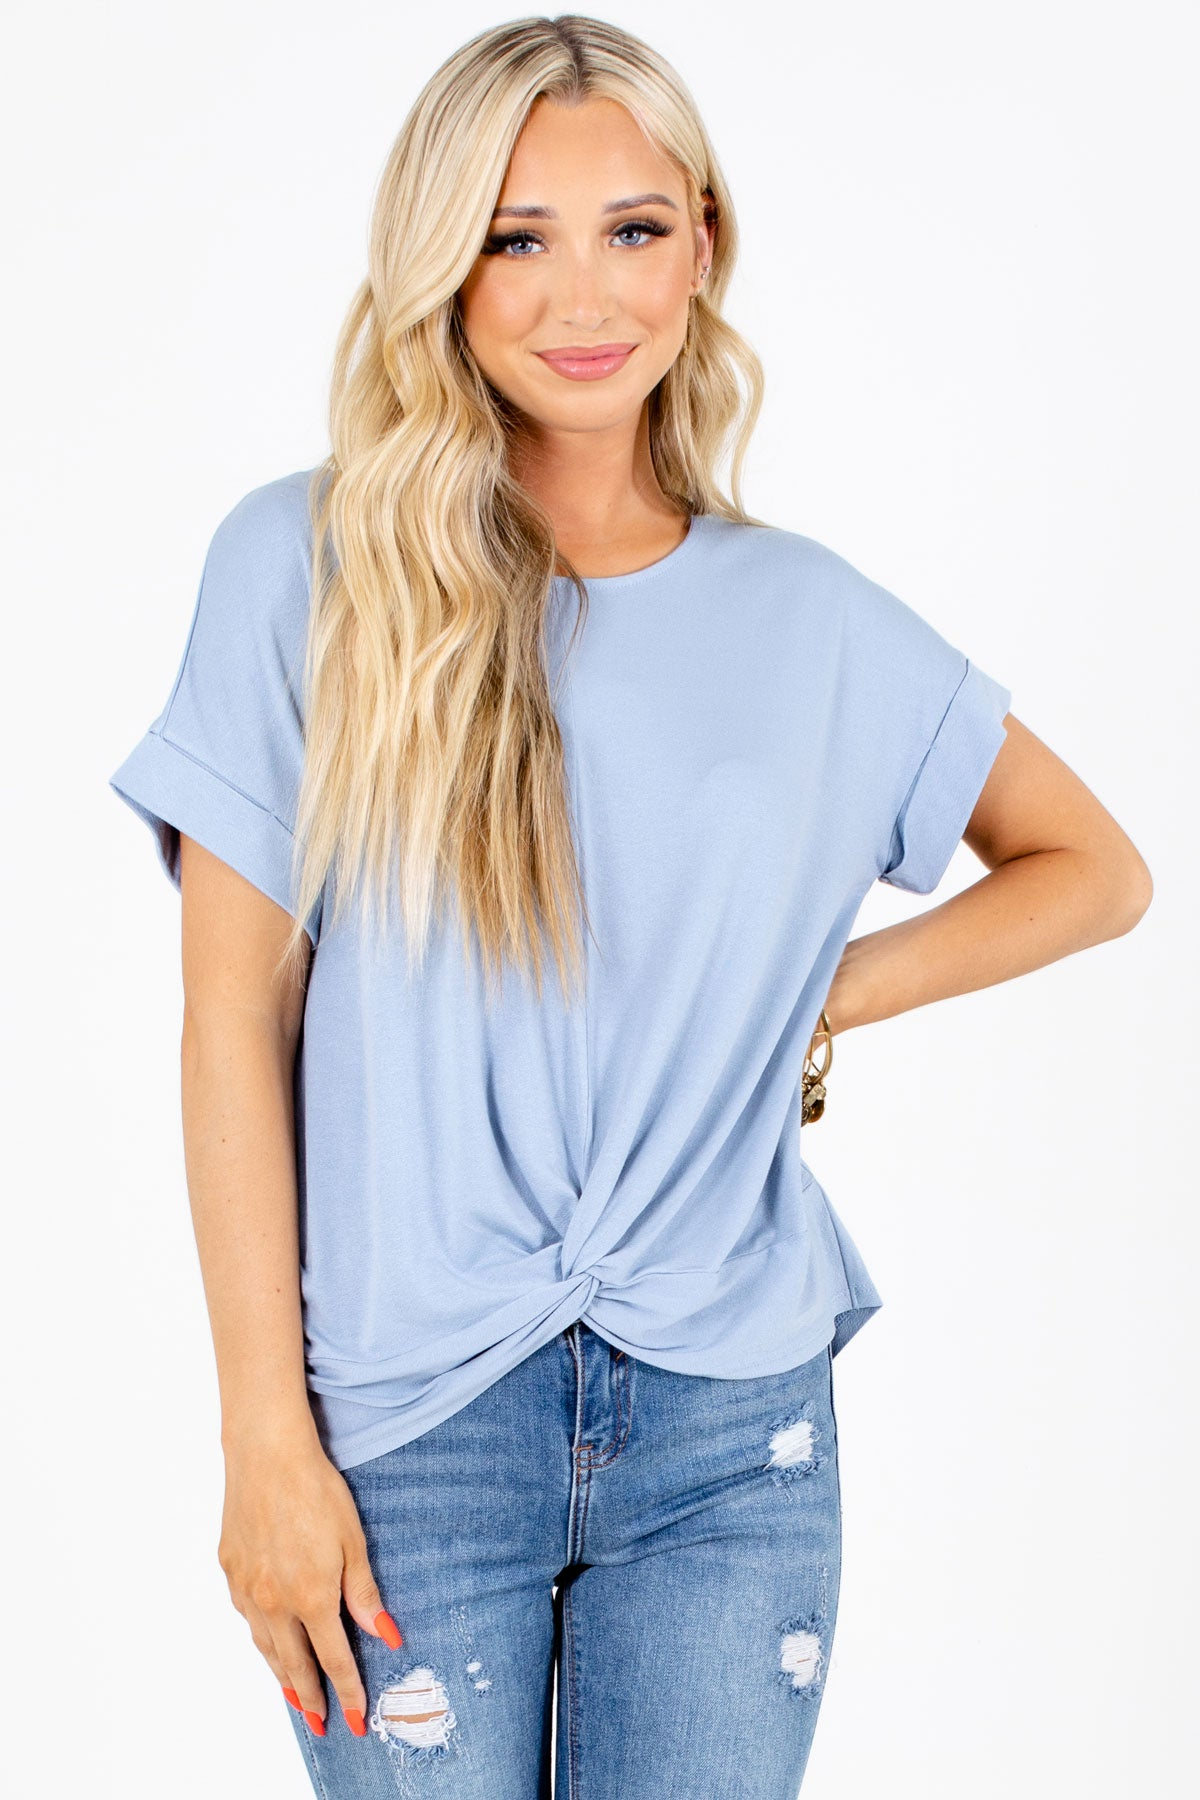 Blue Infinity Knot Detailed Boutique Tops for Women